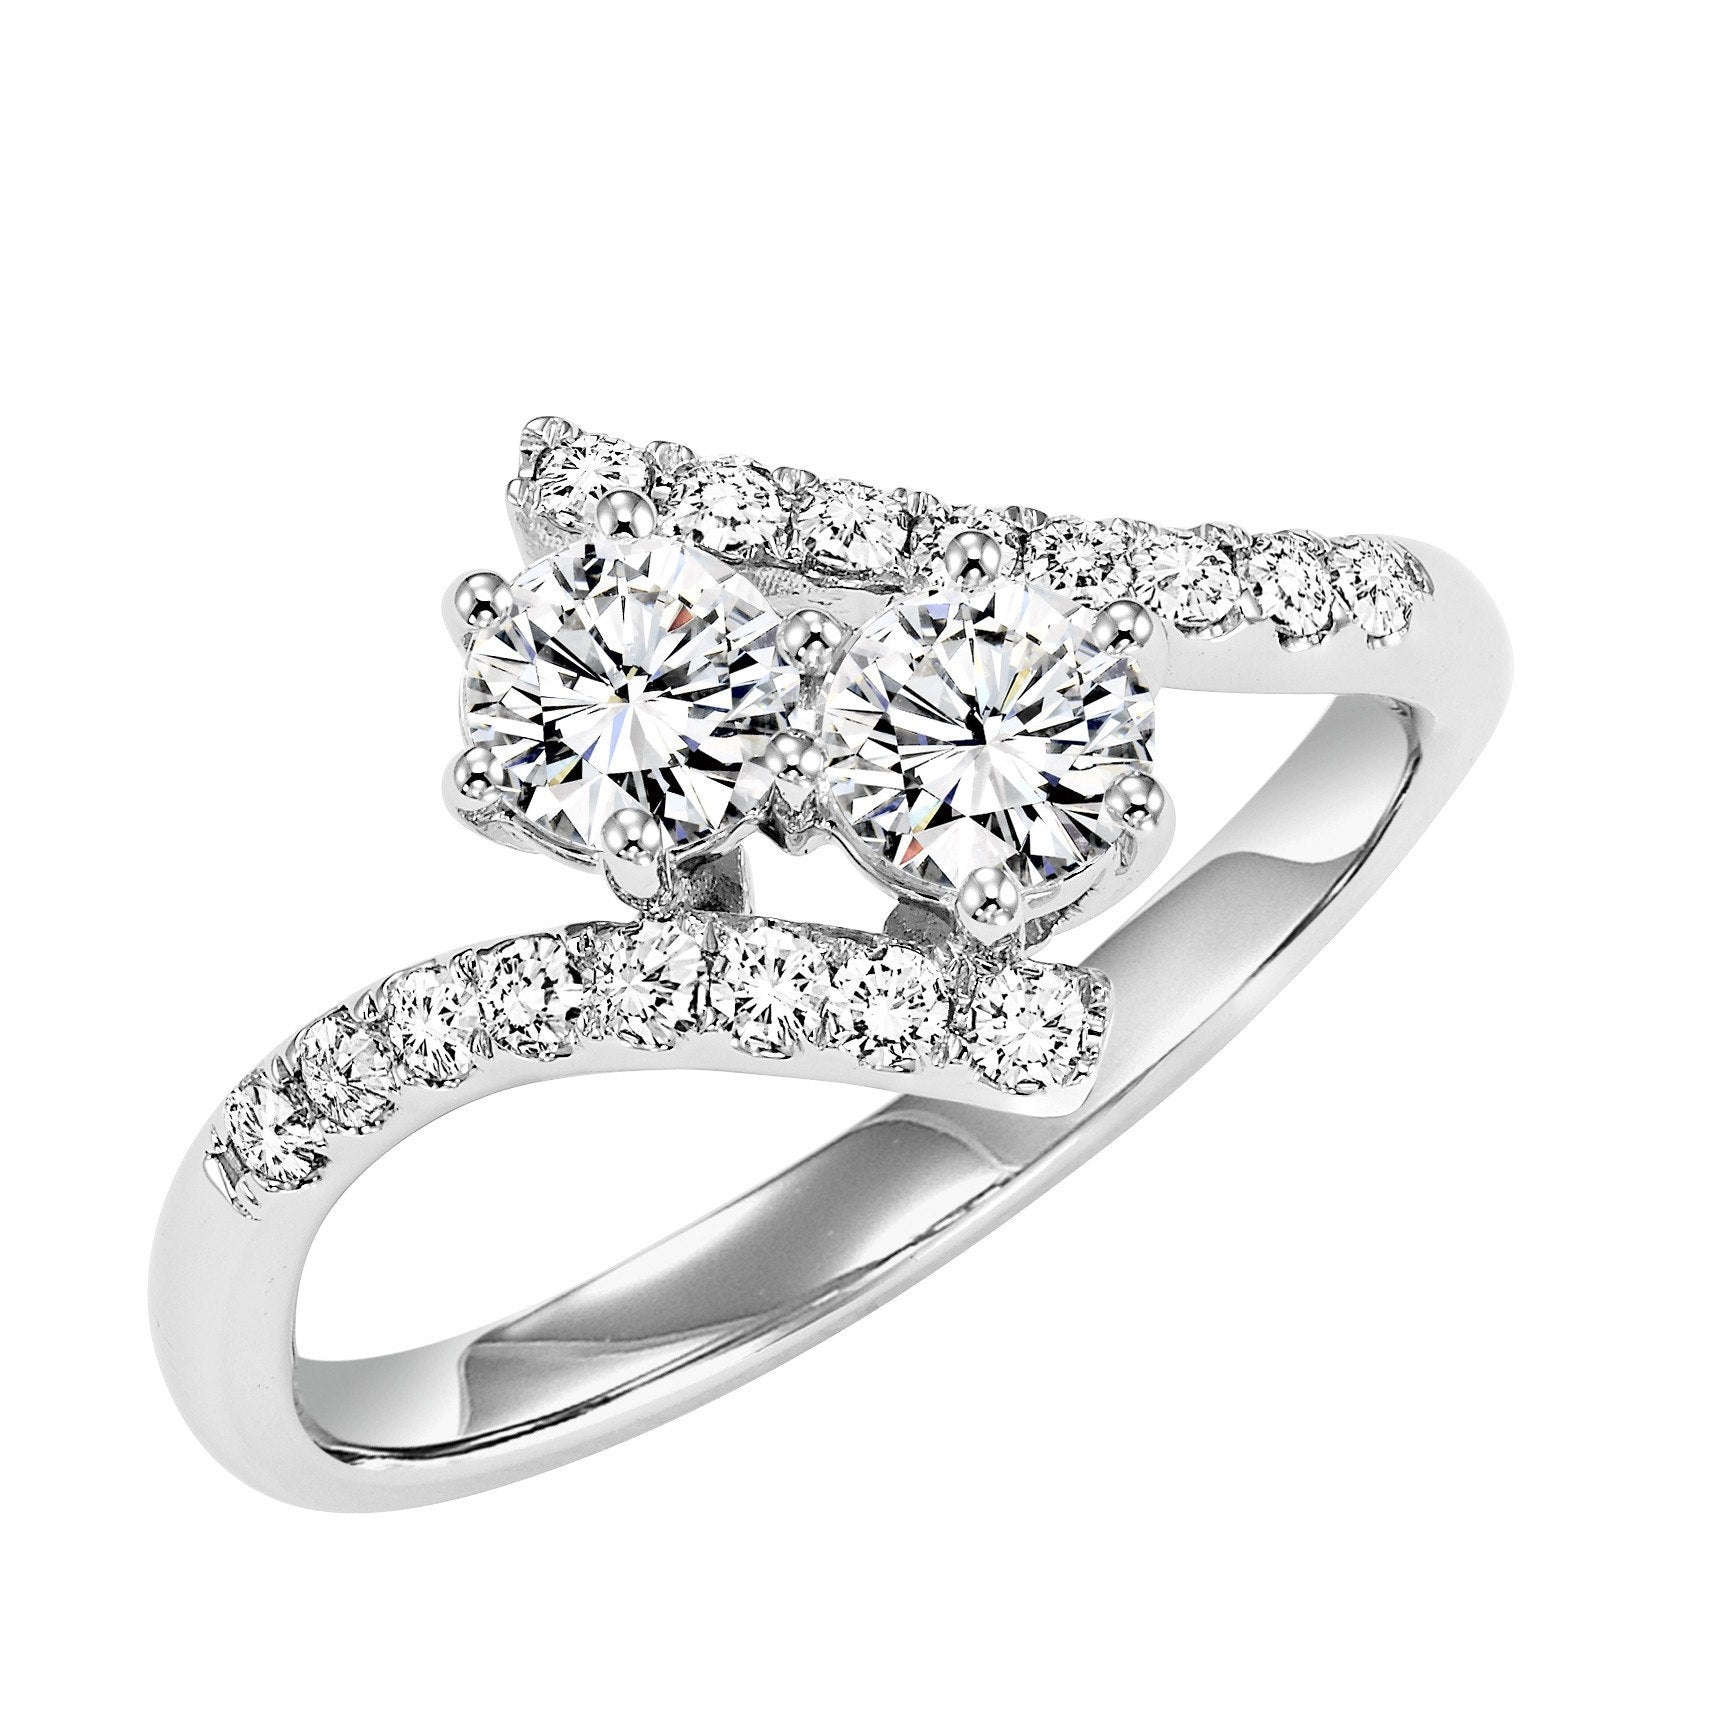 Diamond Jewelry Earrings Necklaces Rings & More Mullen Jewelers